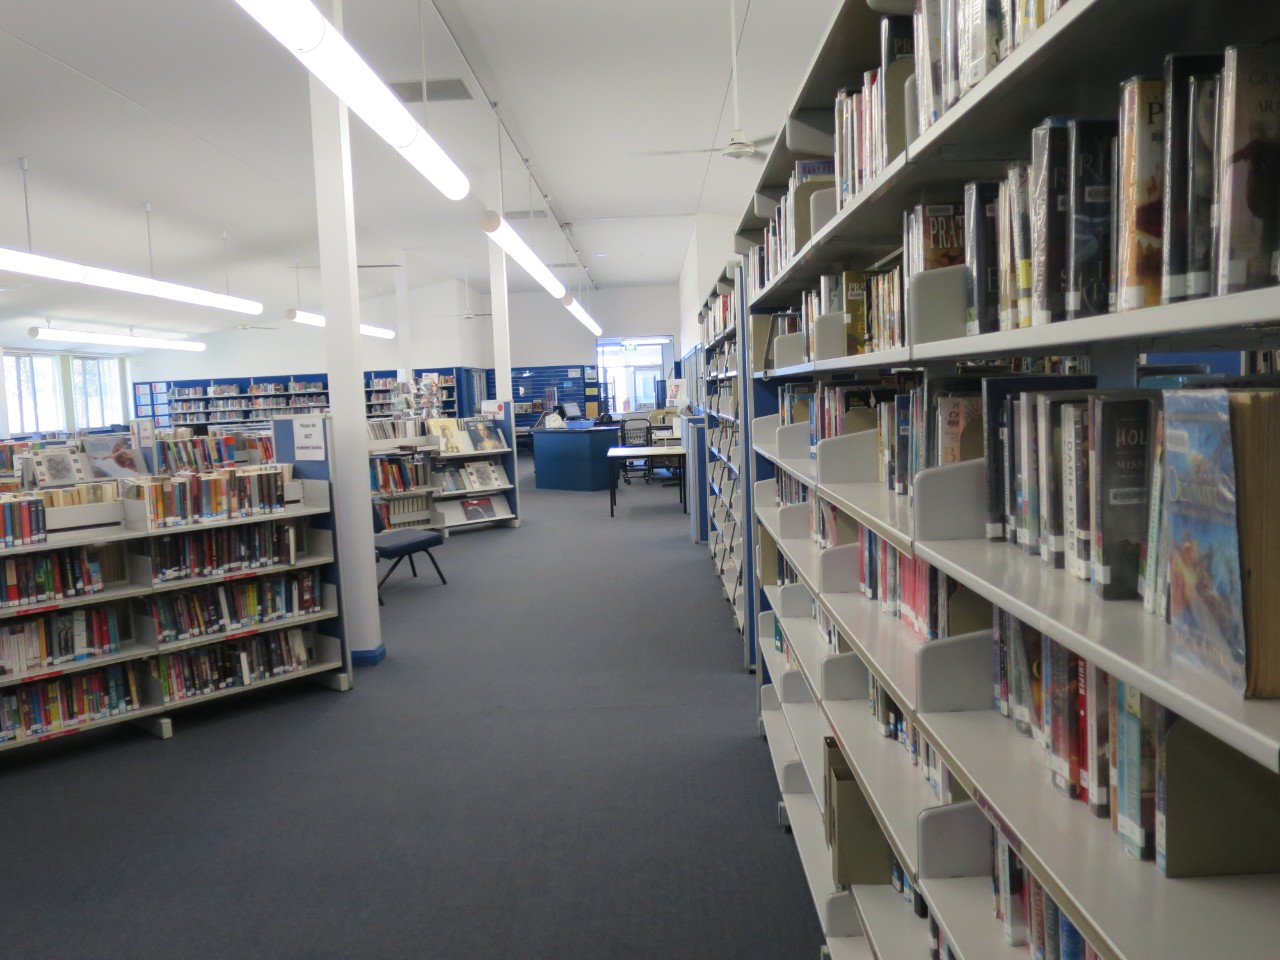 Library books on the library shelves.